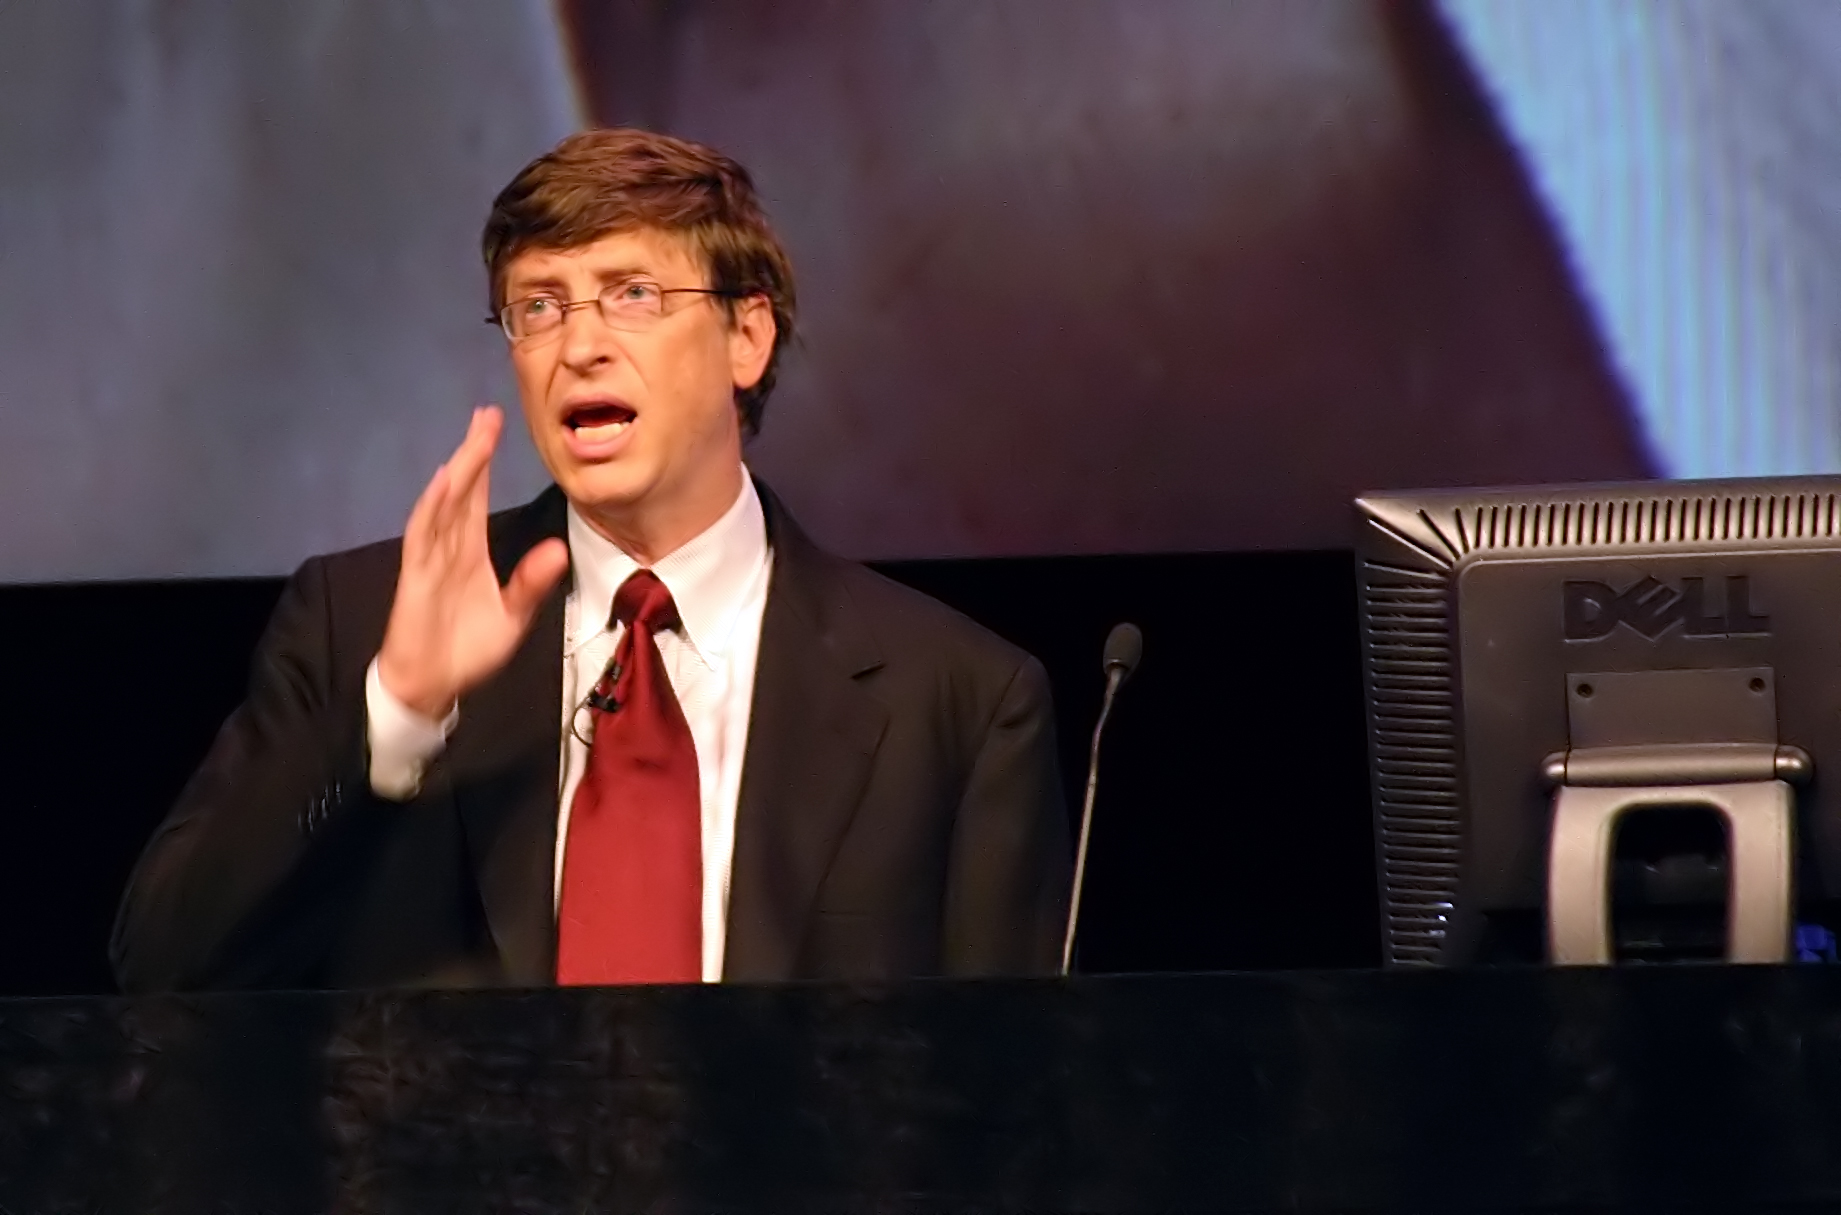 http://upload.wikimedia.org/wikipedia/commons/3/31/Bill_Gates_2004.jpg